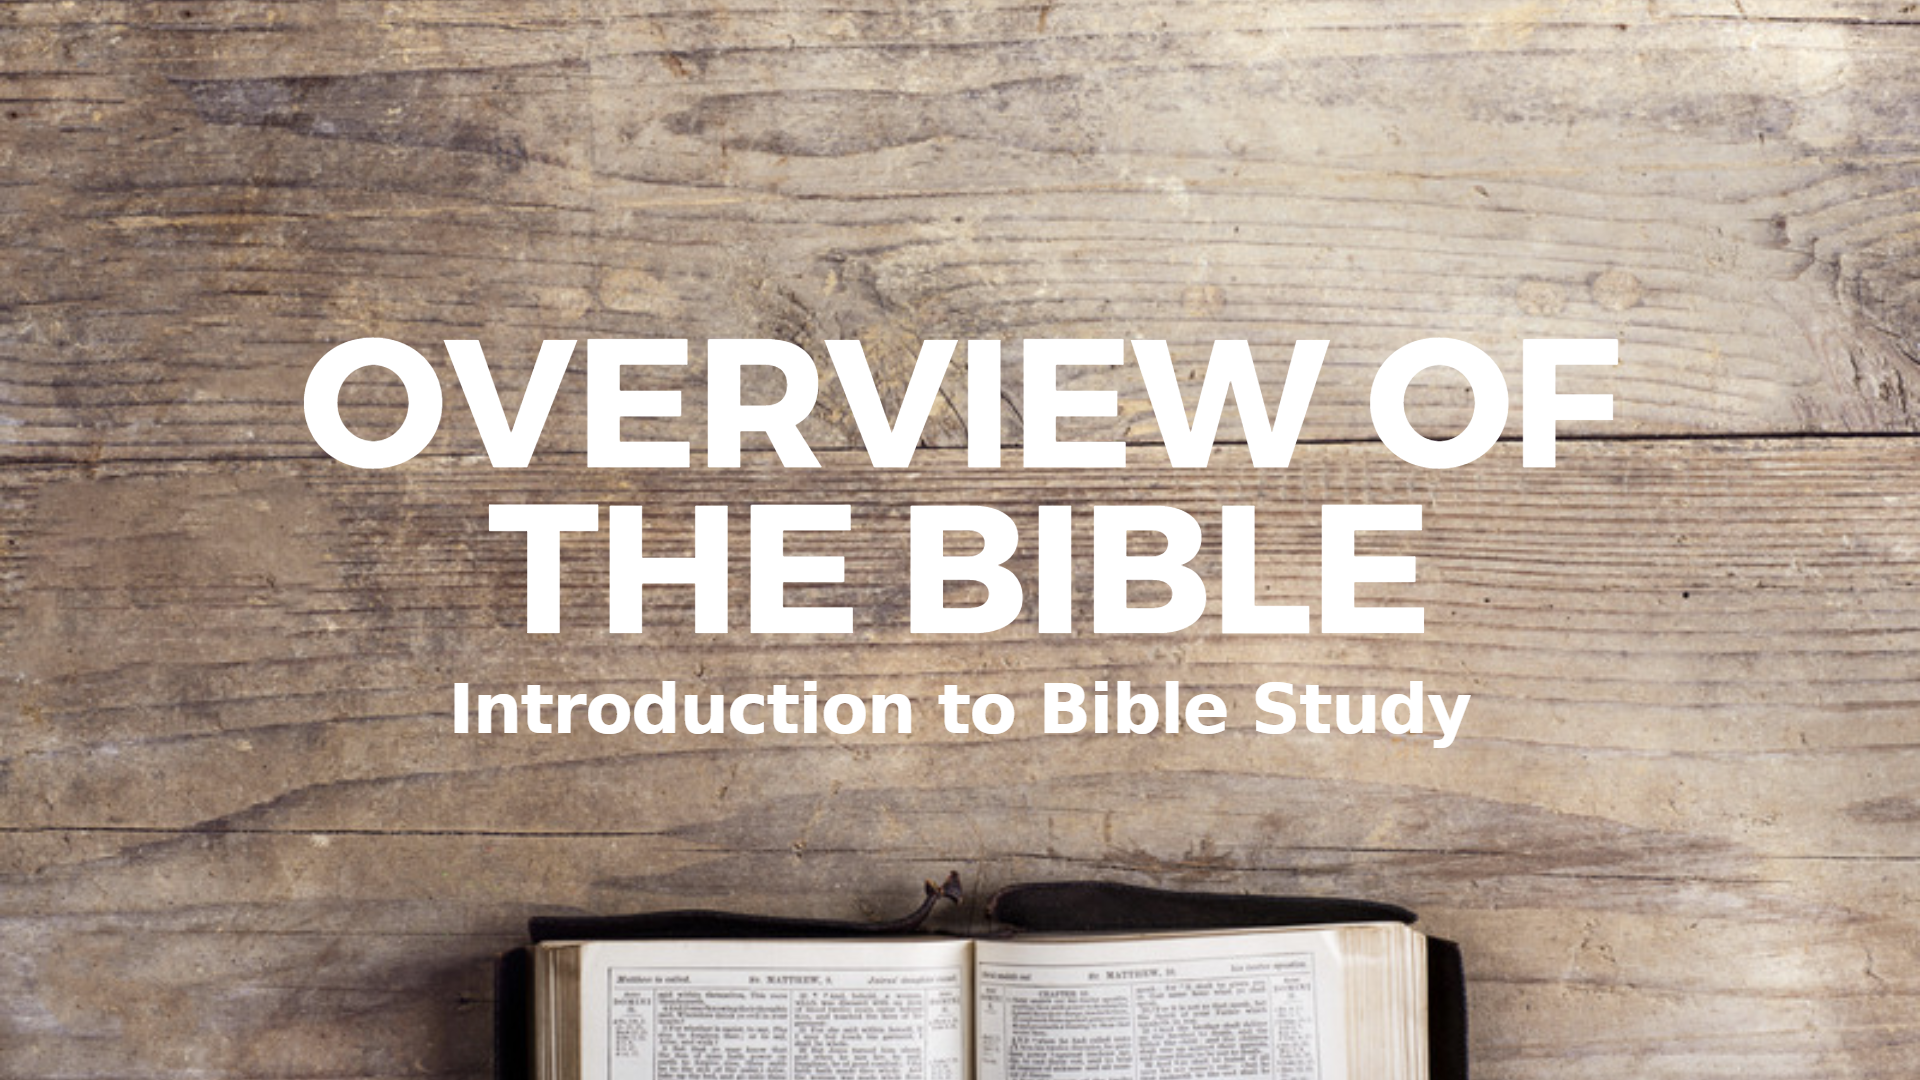 Overview of the Bible - image.png